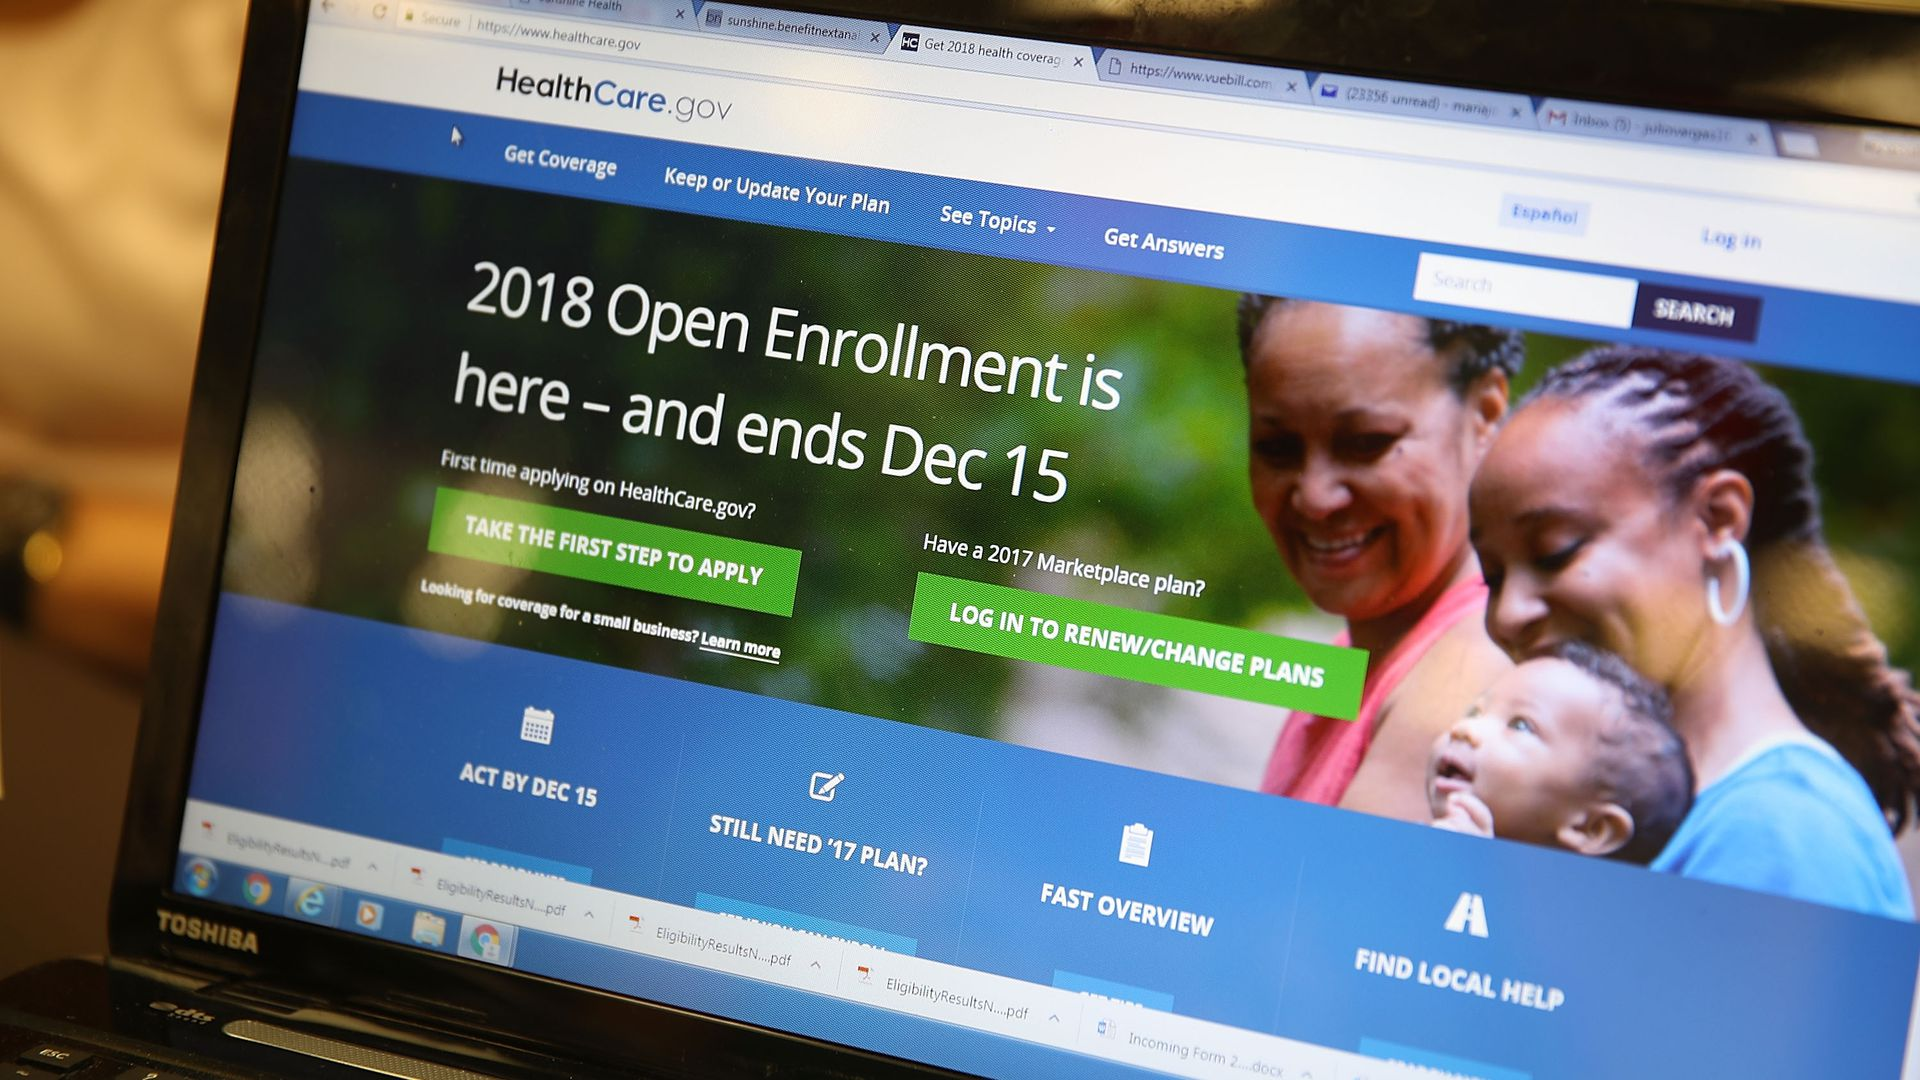 a computer showing the HealthCare.gov website